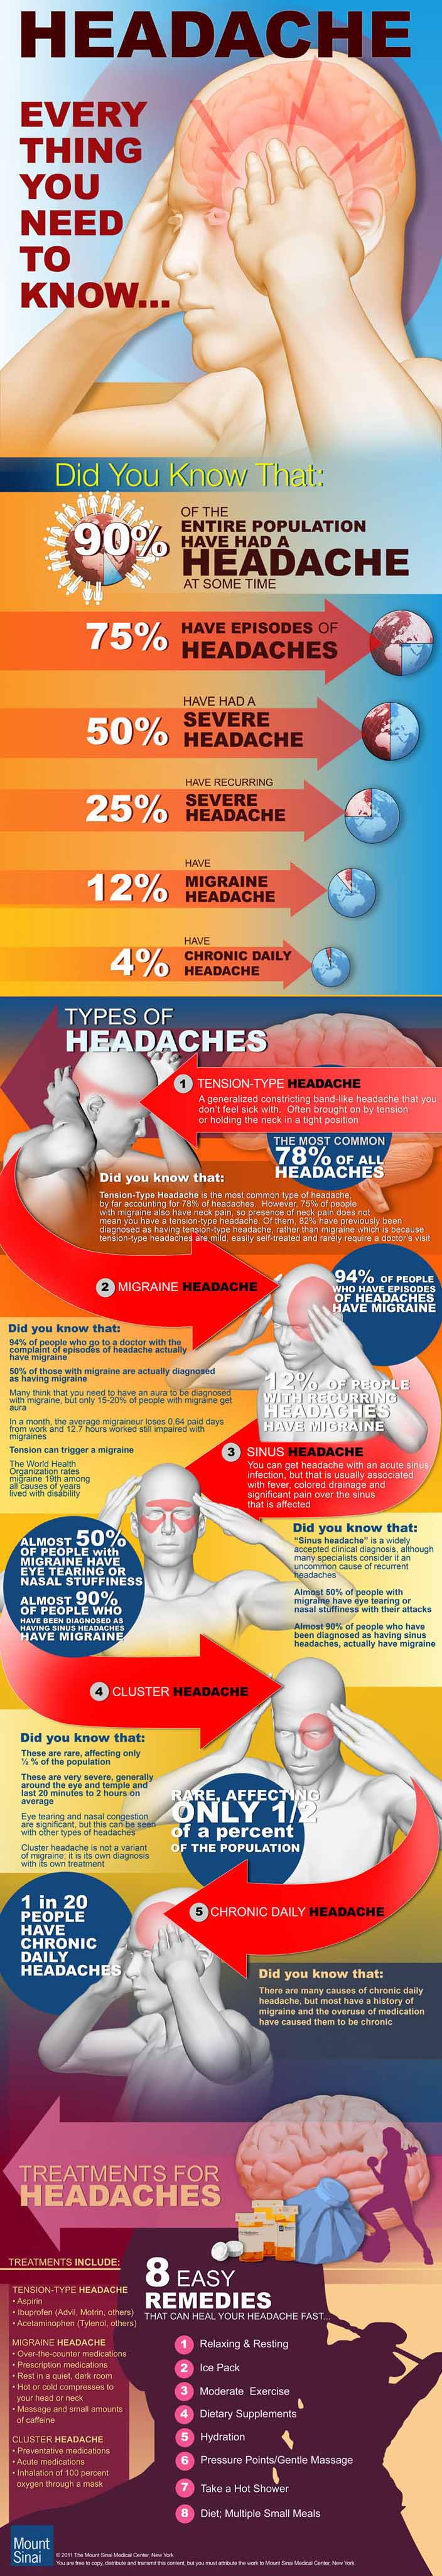 Headache infographic